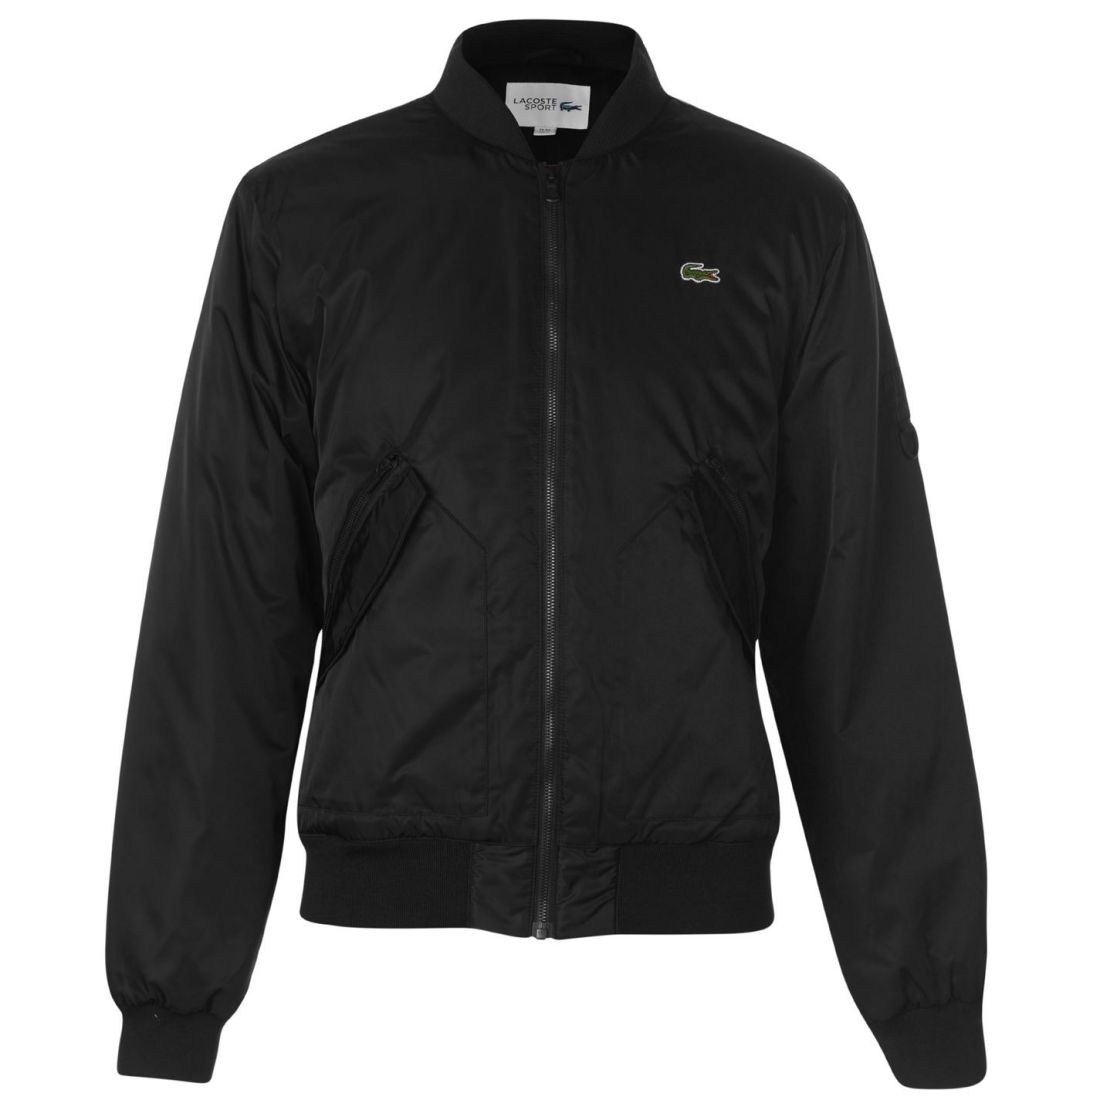 f3cc6ea2a Image is loading Mens-Lacoste-Twill-Bomber-Jacket-Zip-New